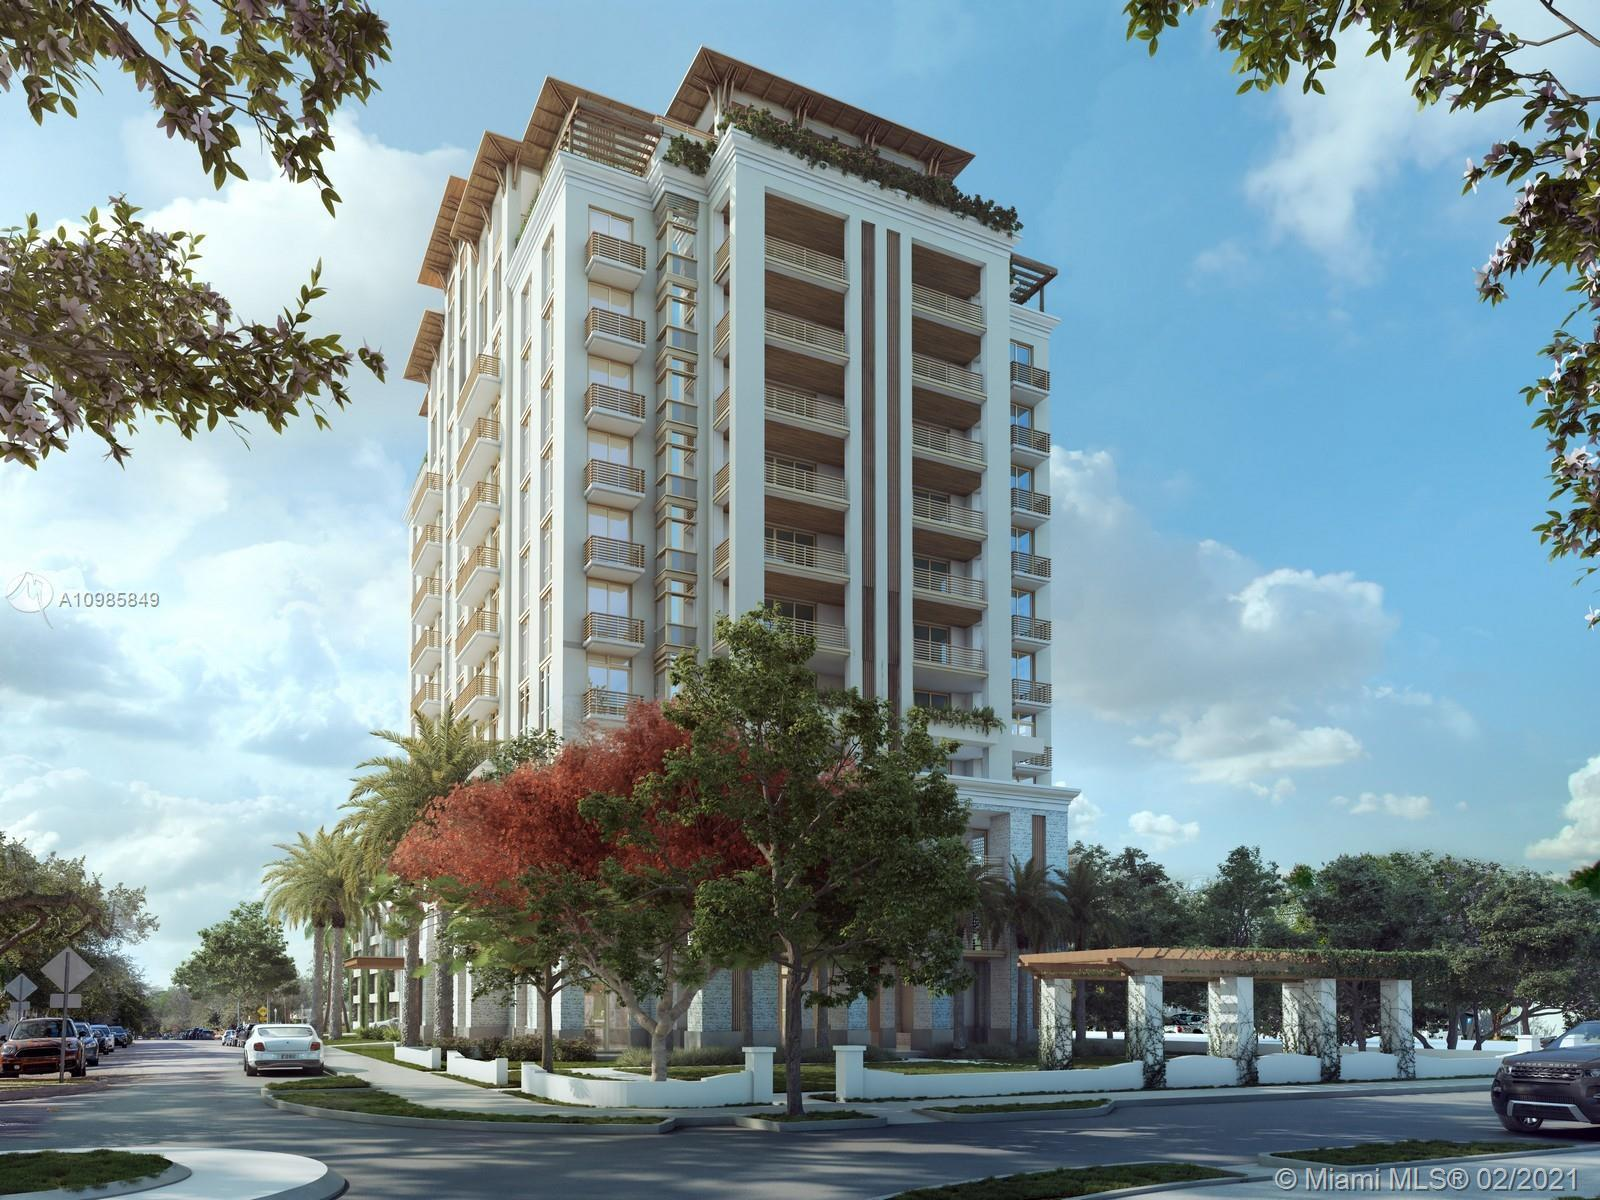 Situated on the private side of Coral Gables, Villa Valencia will feature 39 luxury condominium resi